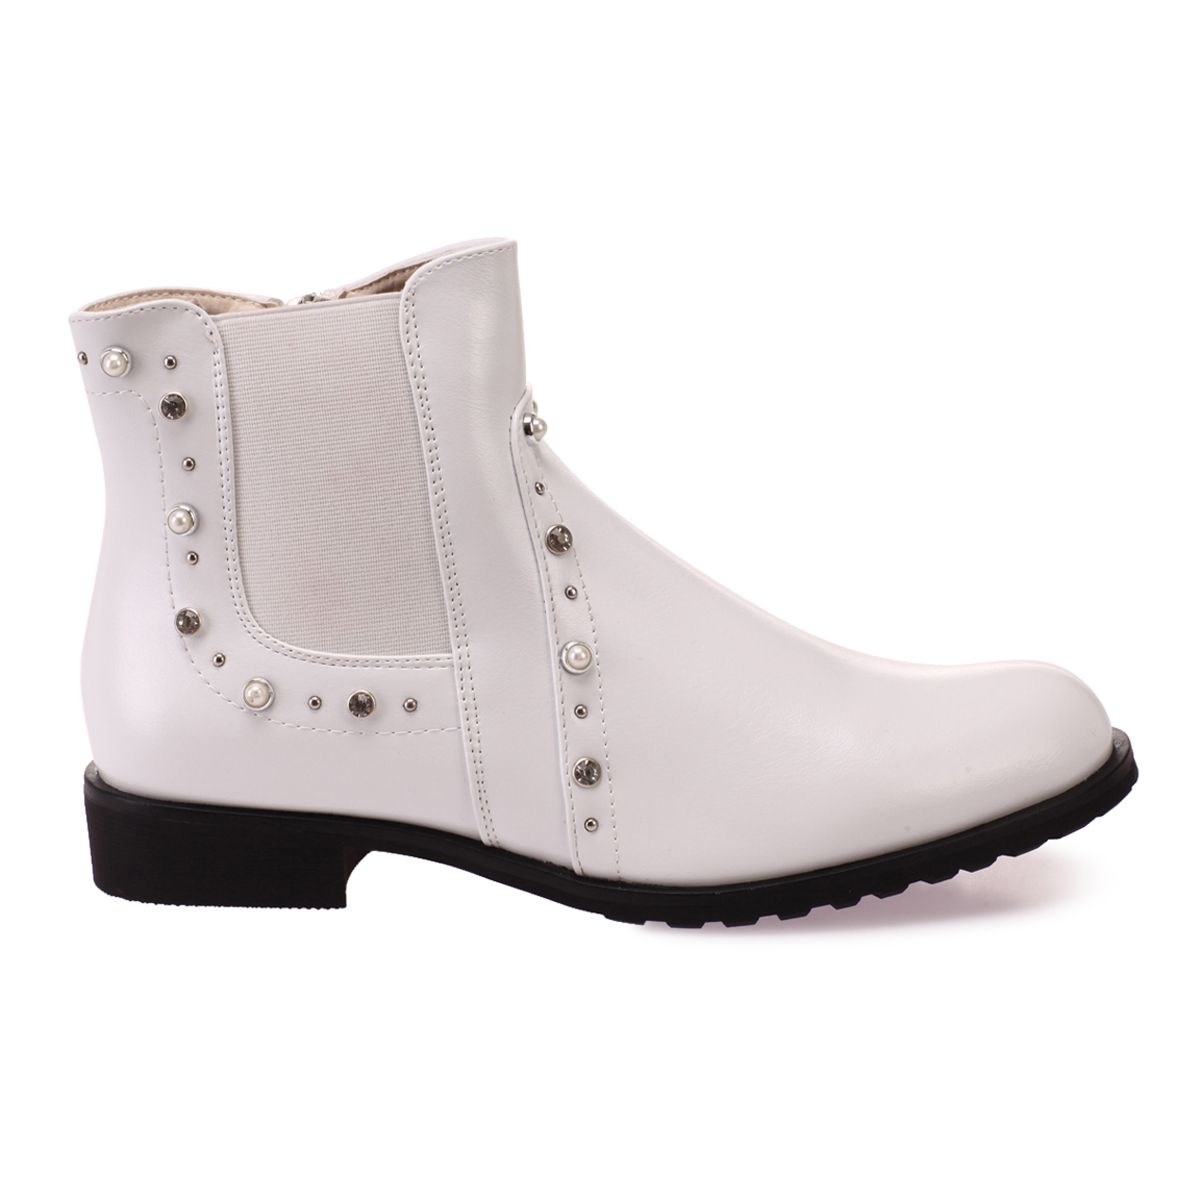 Bottines blanches style chelsea à perles et strass